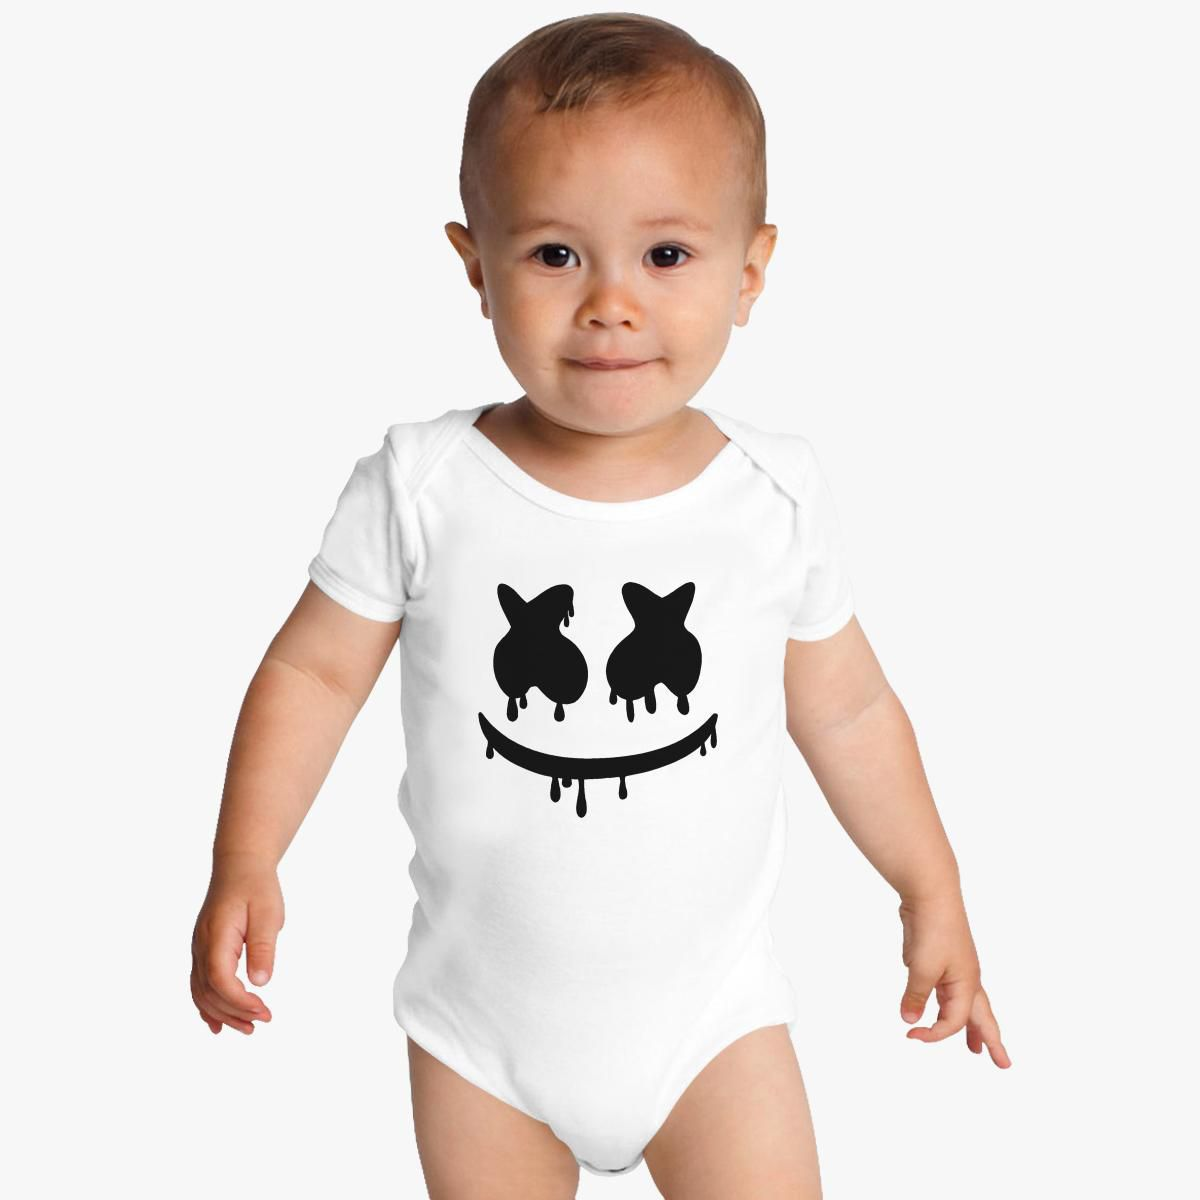 de03a3835 Marshmello Baby Onesies - Customon